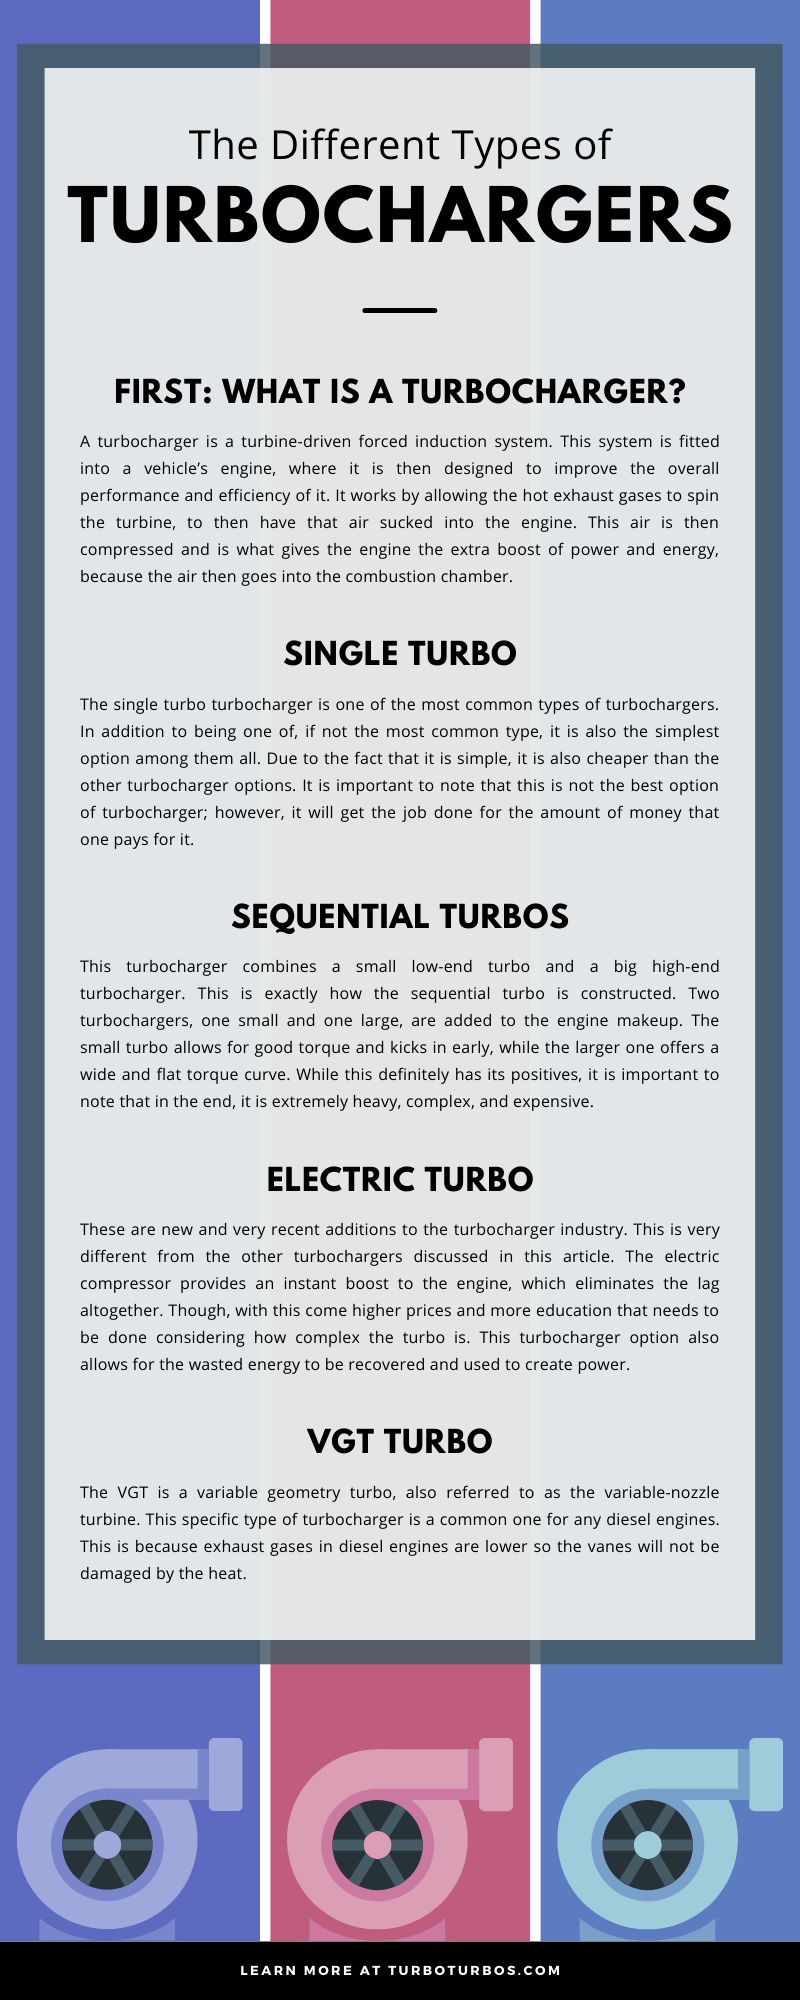 The Different Types of Turbochargers